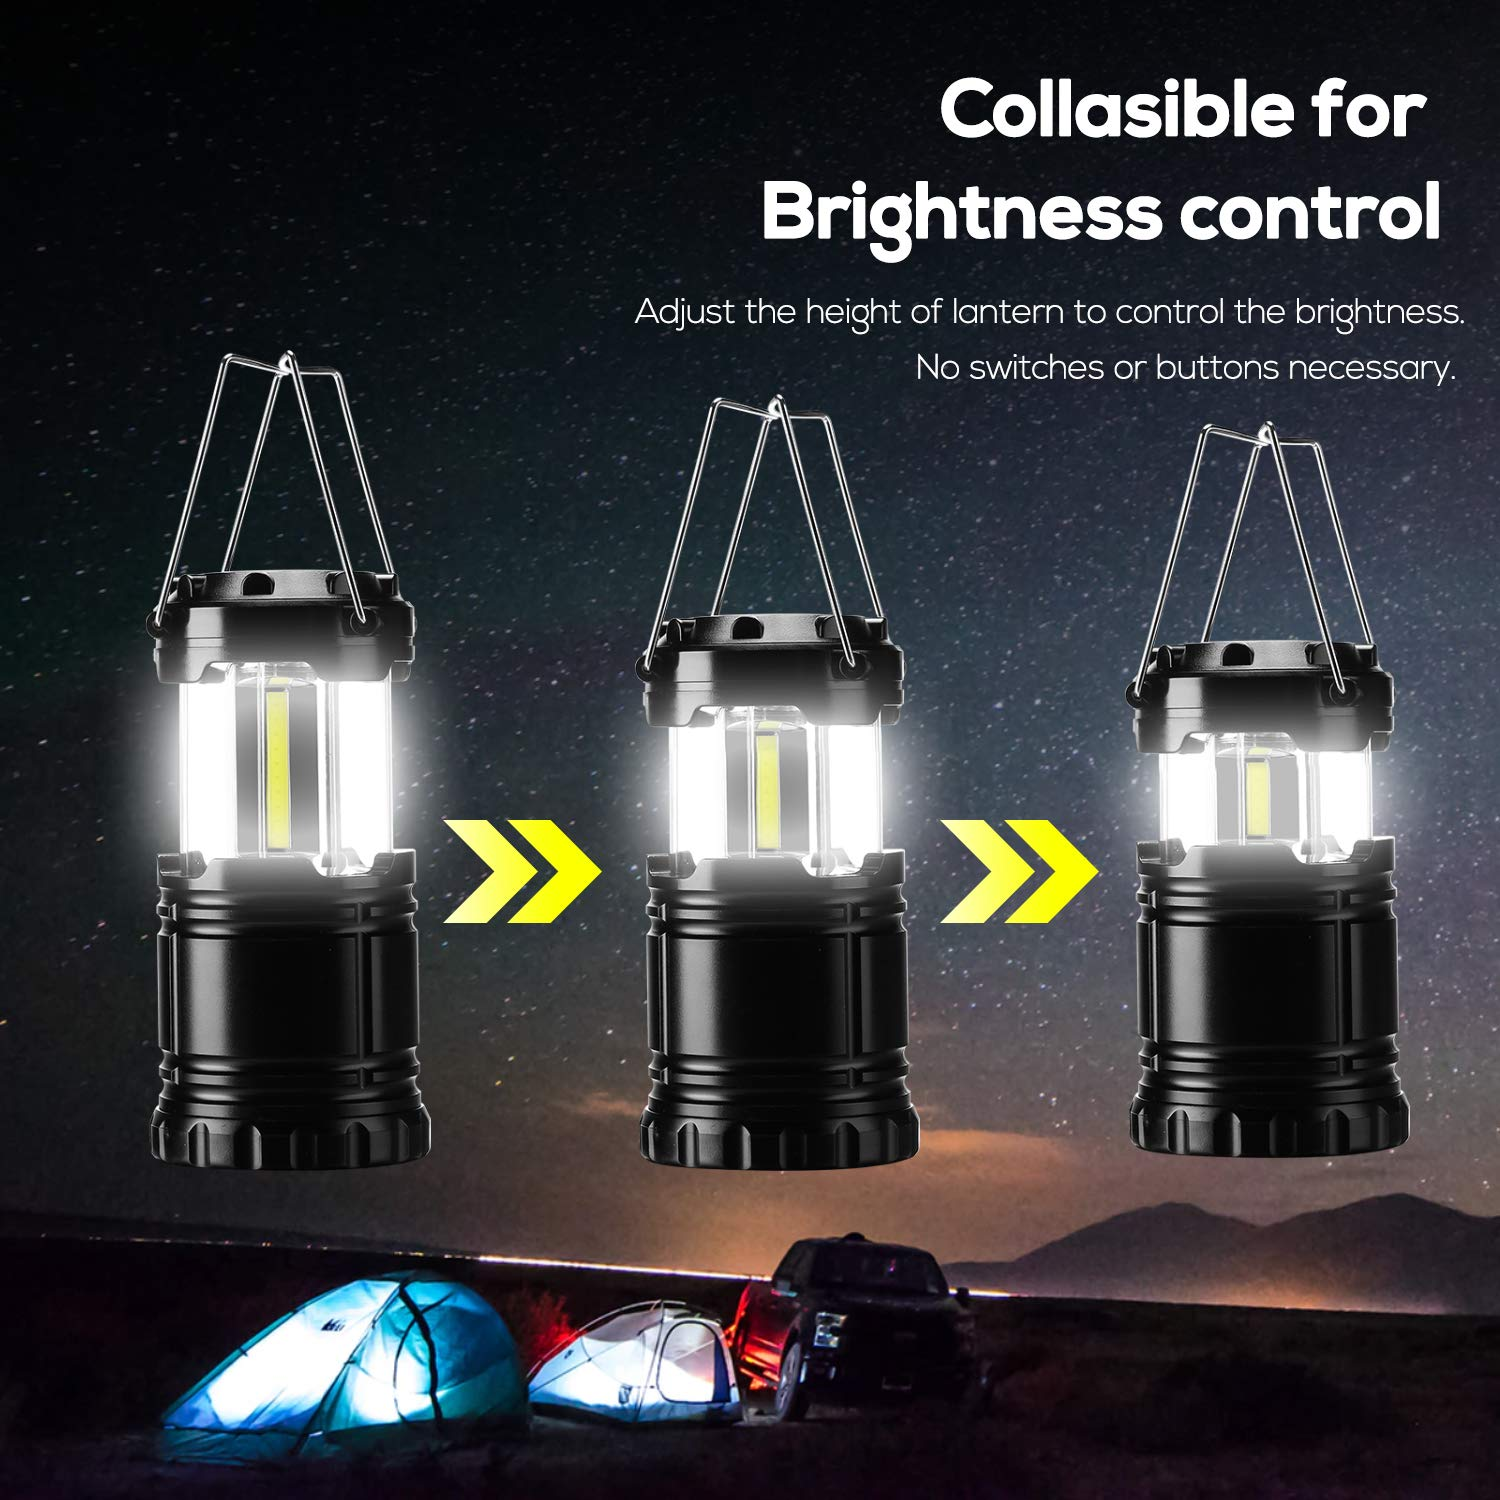 350 Lumens Power Outage Hurricane Hiking Portable for Outdoor Emergency Waterproof Shockproof Handheld Size Gukos 2-Pack Camping Lantern COB LED Lights Collapsible Lamp